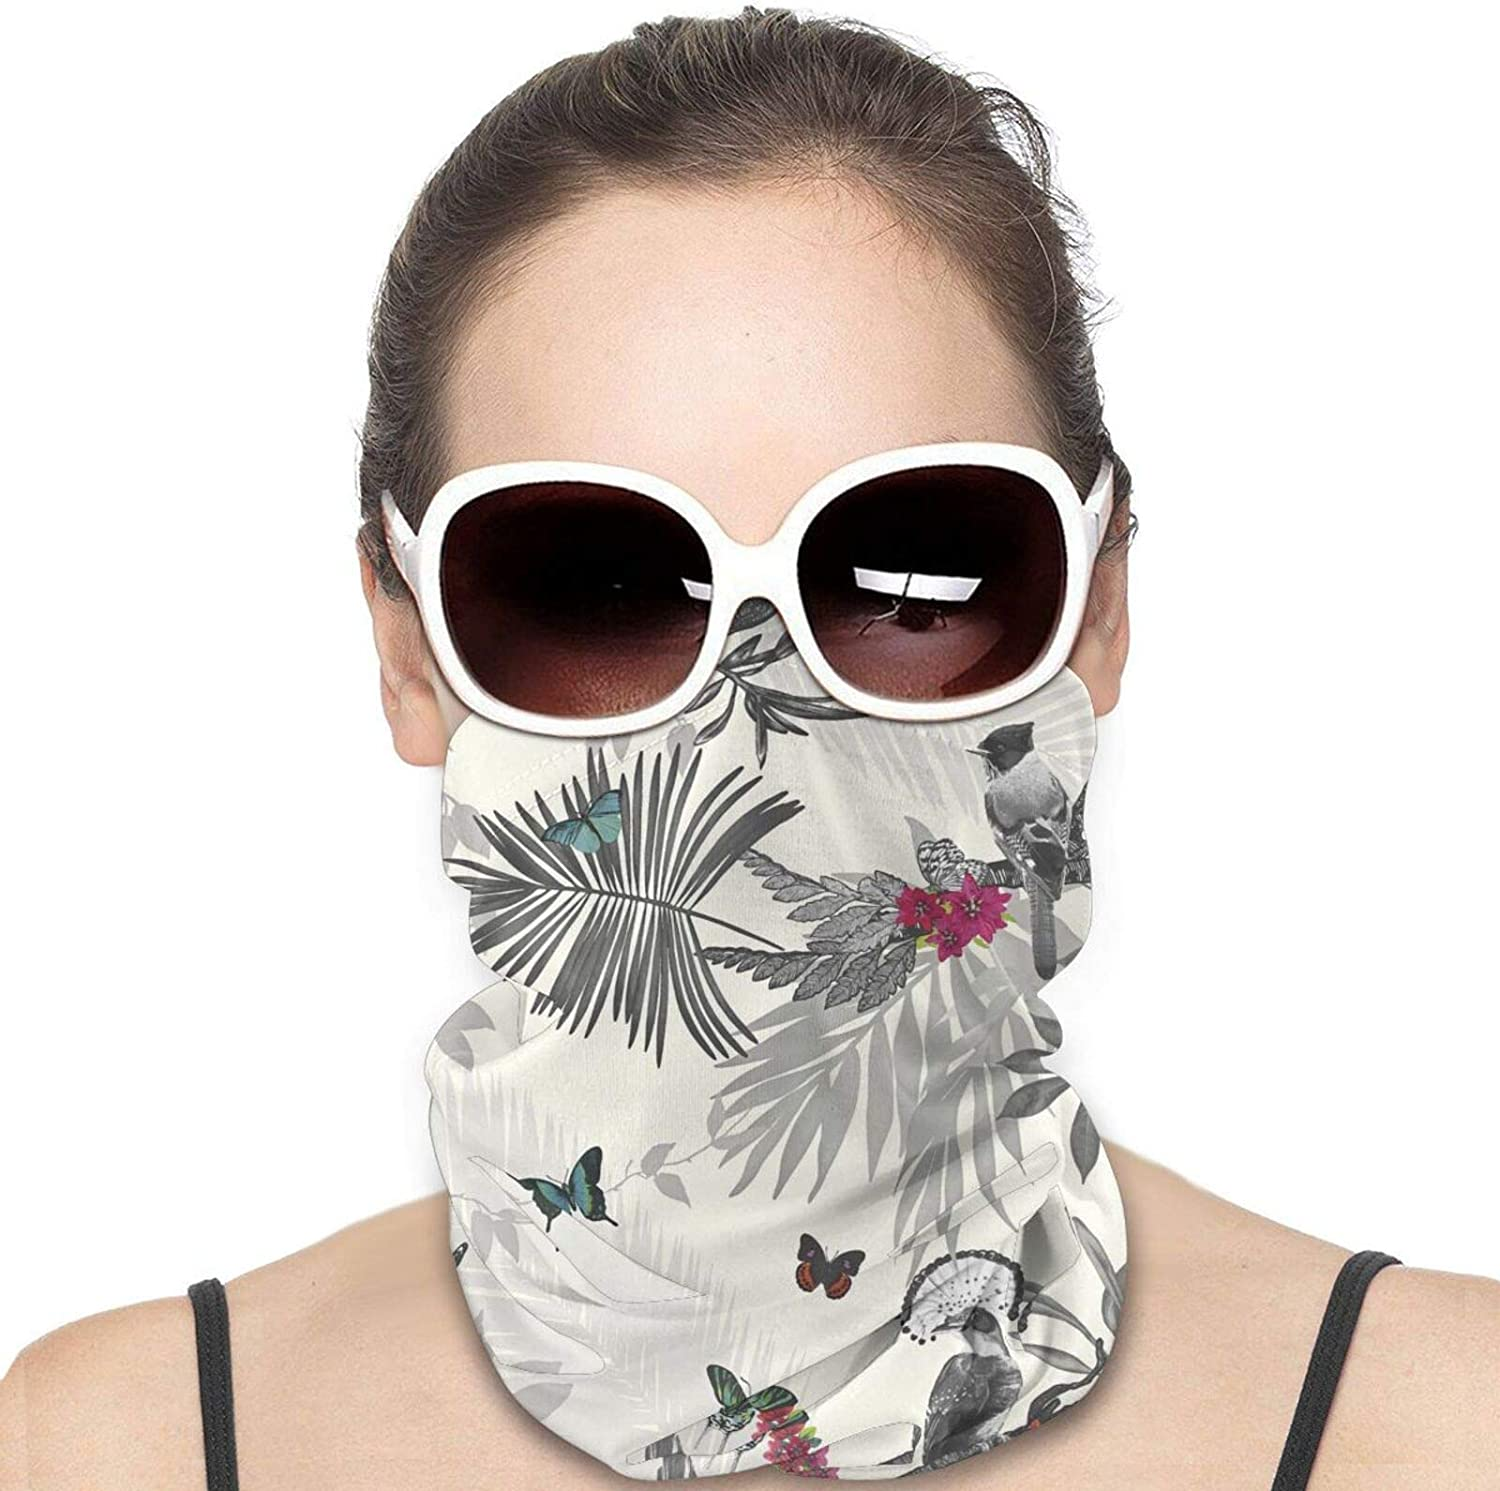 Floral Leaf Neck Gaiter Windproof Face Cover Balaclava Outdoors Magic Scarf Headband for Men Women Motorcycling Fishing Running Climbing